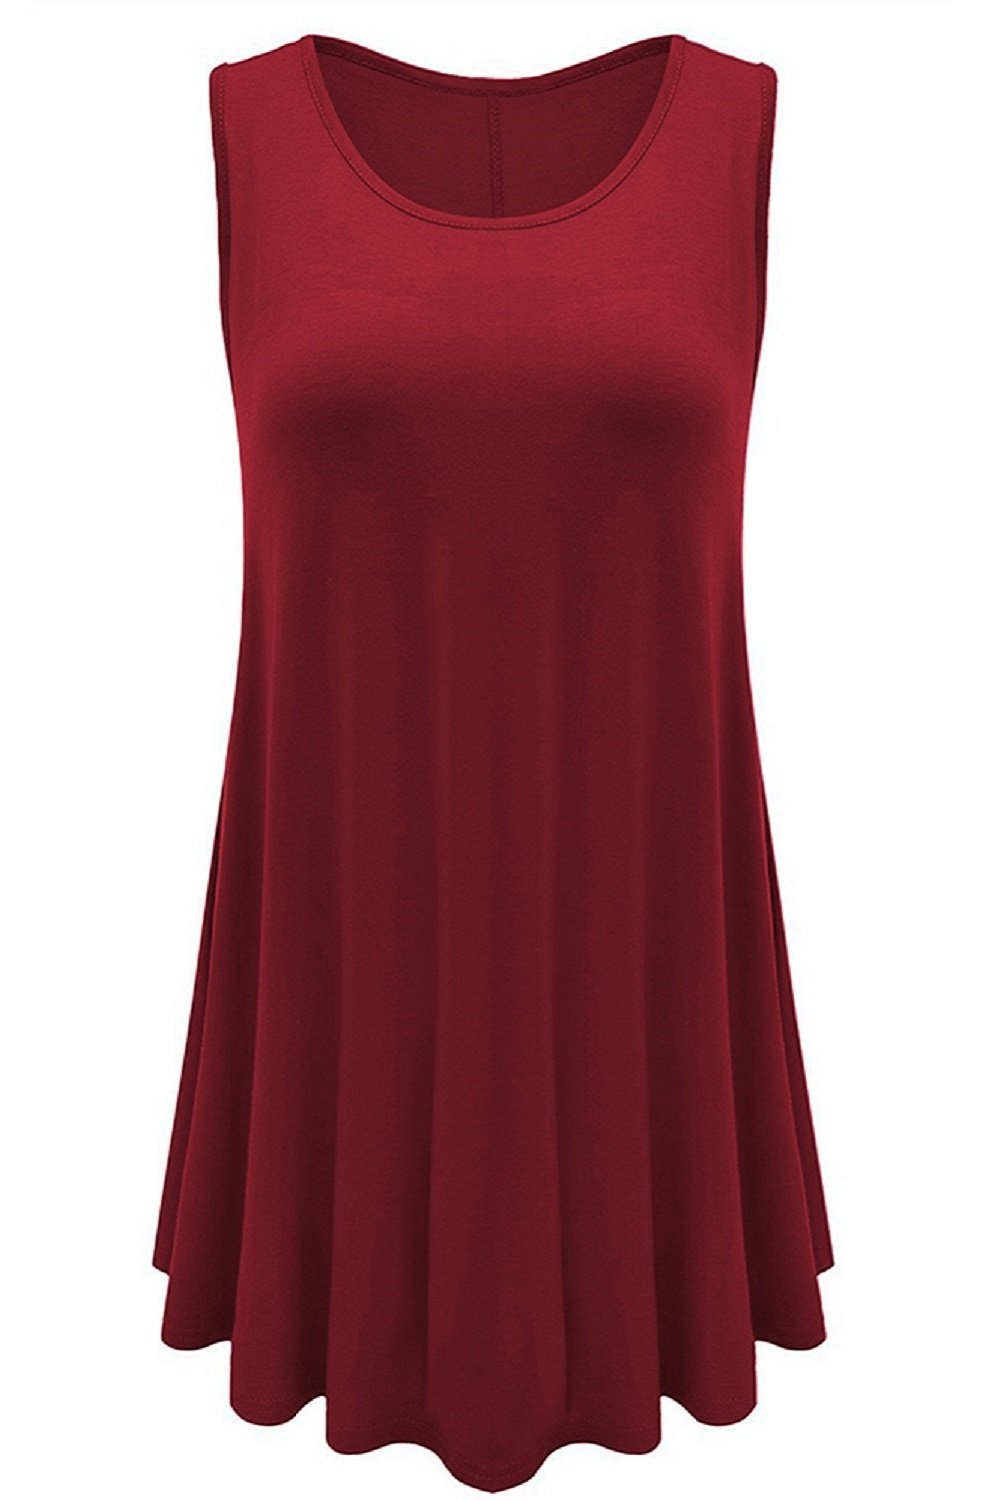 Jescakoo Womens Tops Solid Color Cute Sleeveless Tunic for Leggings Wine XXL